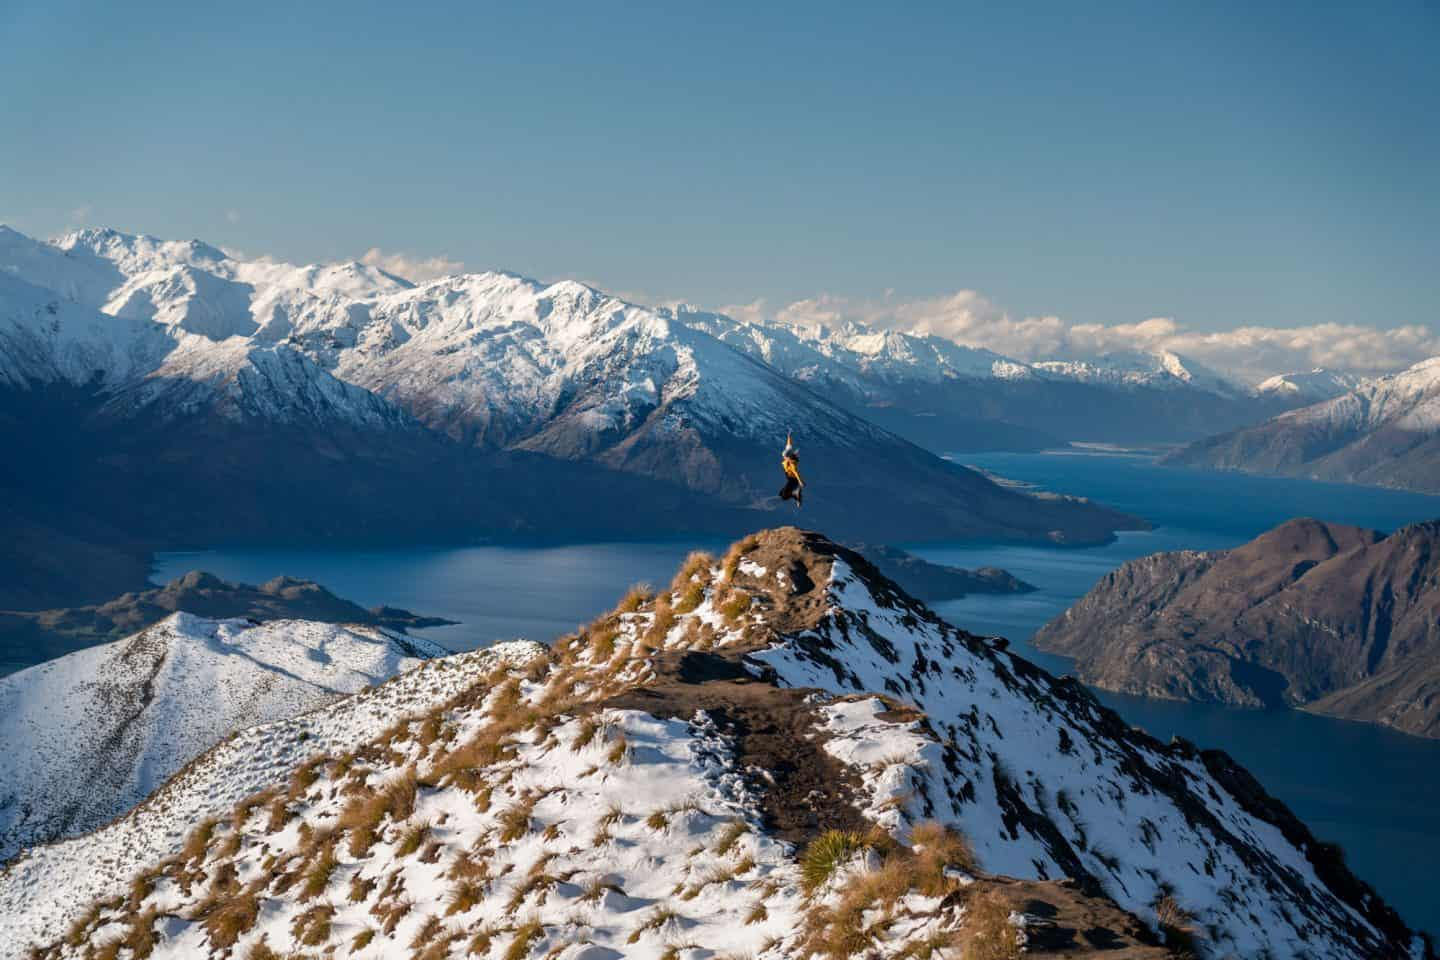 If you have more than 7 days in NZ, definitely make time for the Roys Peak Hike.